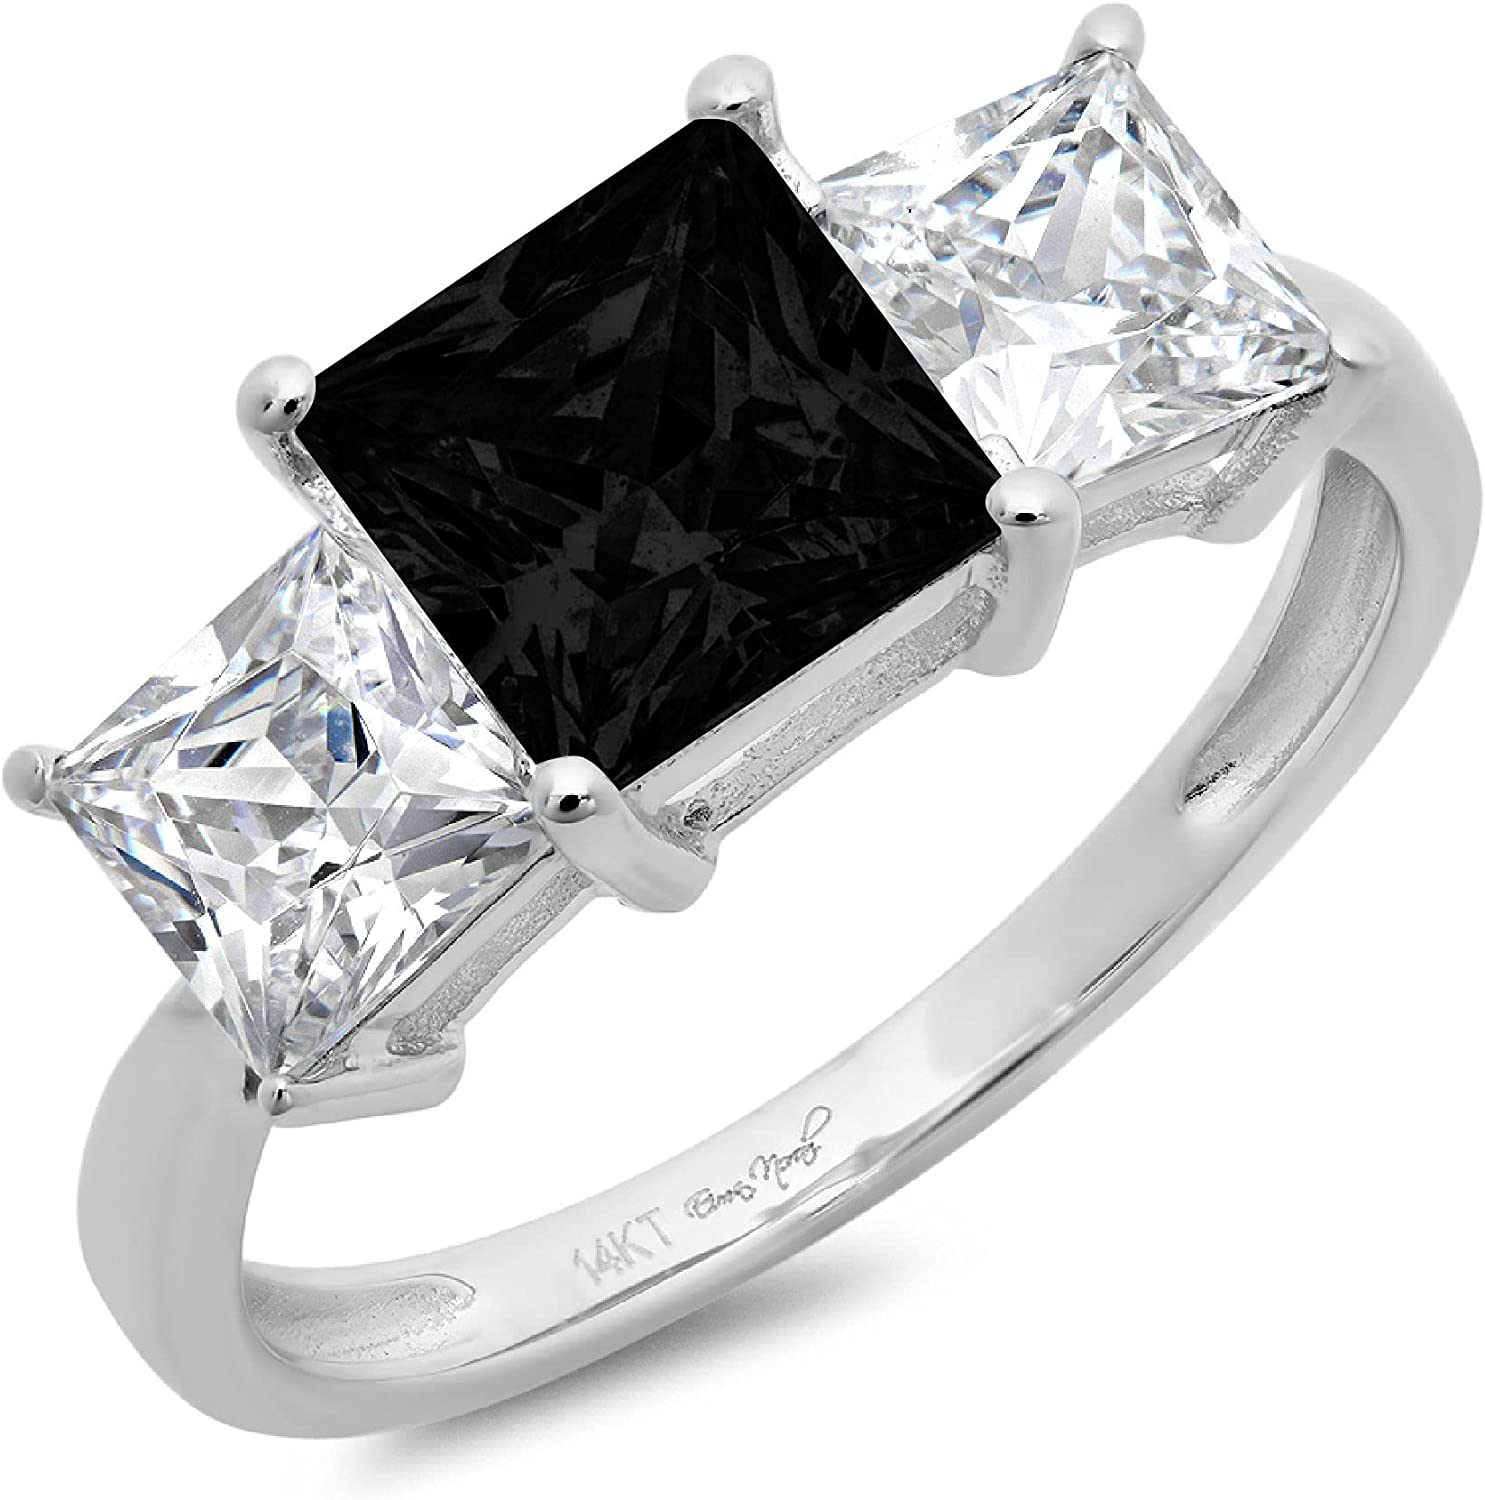 Los Angeles Mall Gorgeous 3.0ct Brilliant Princess Cut 3 Solitaire with Stone Accent Flawl